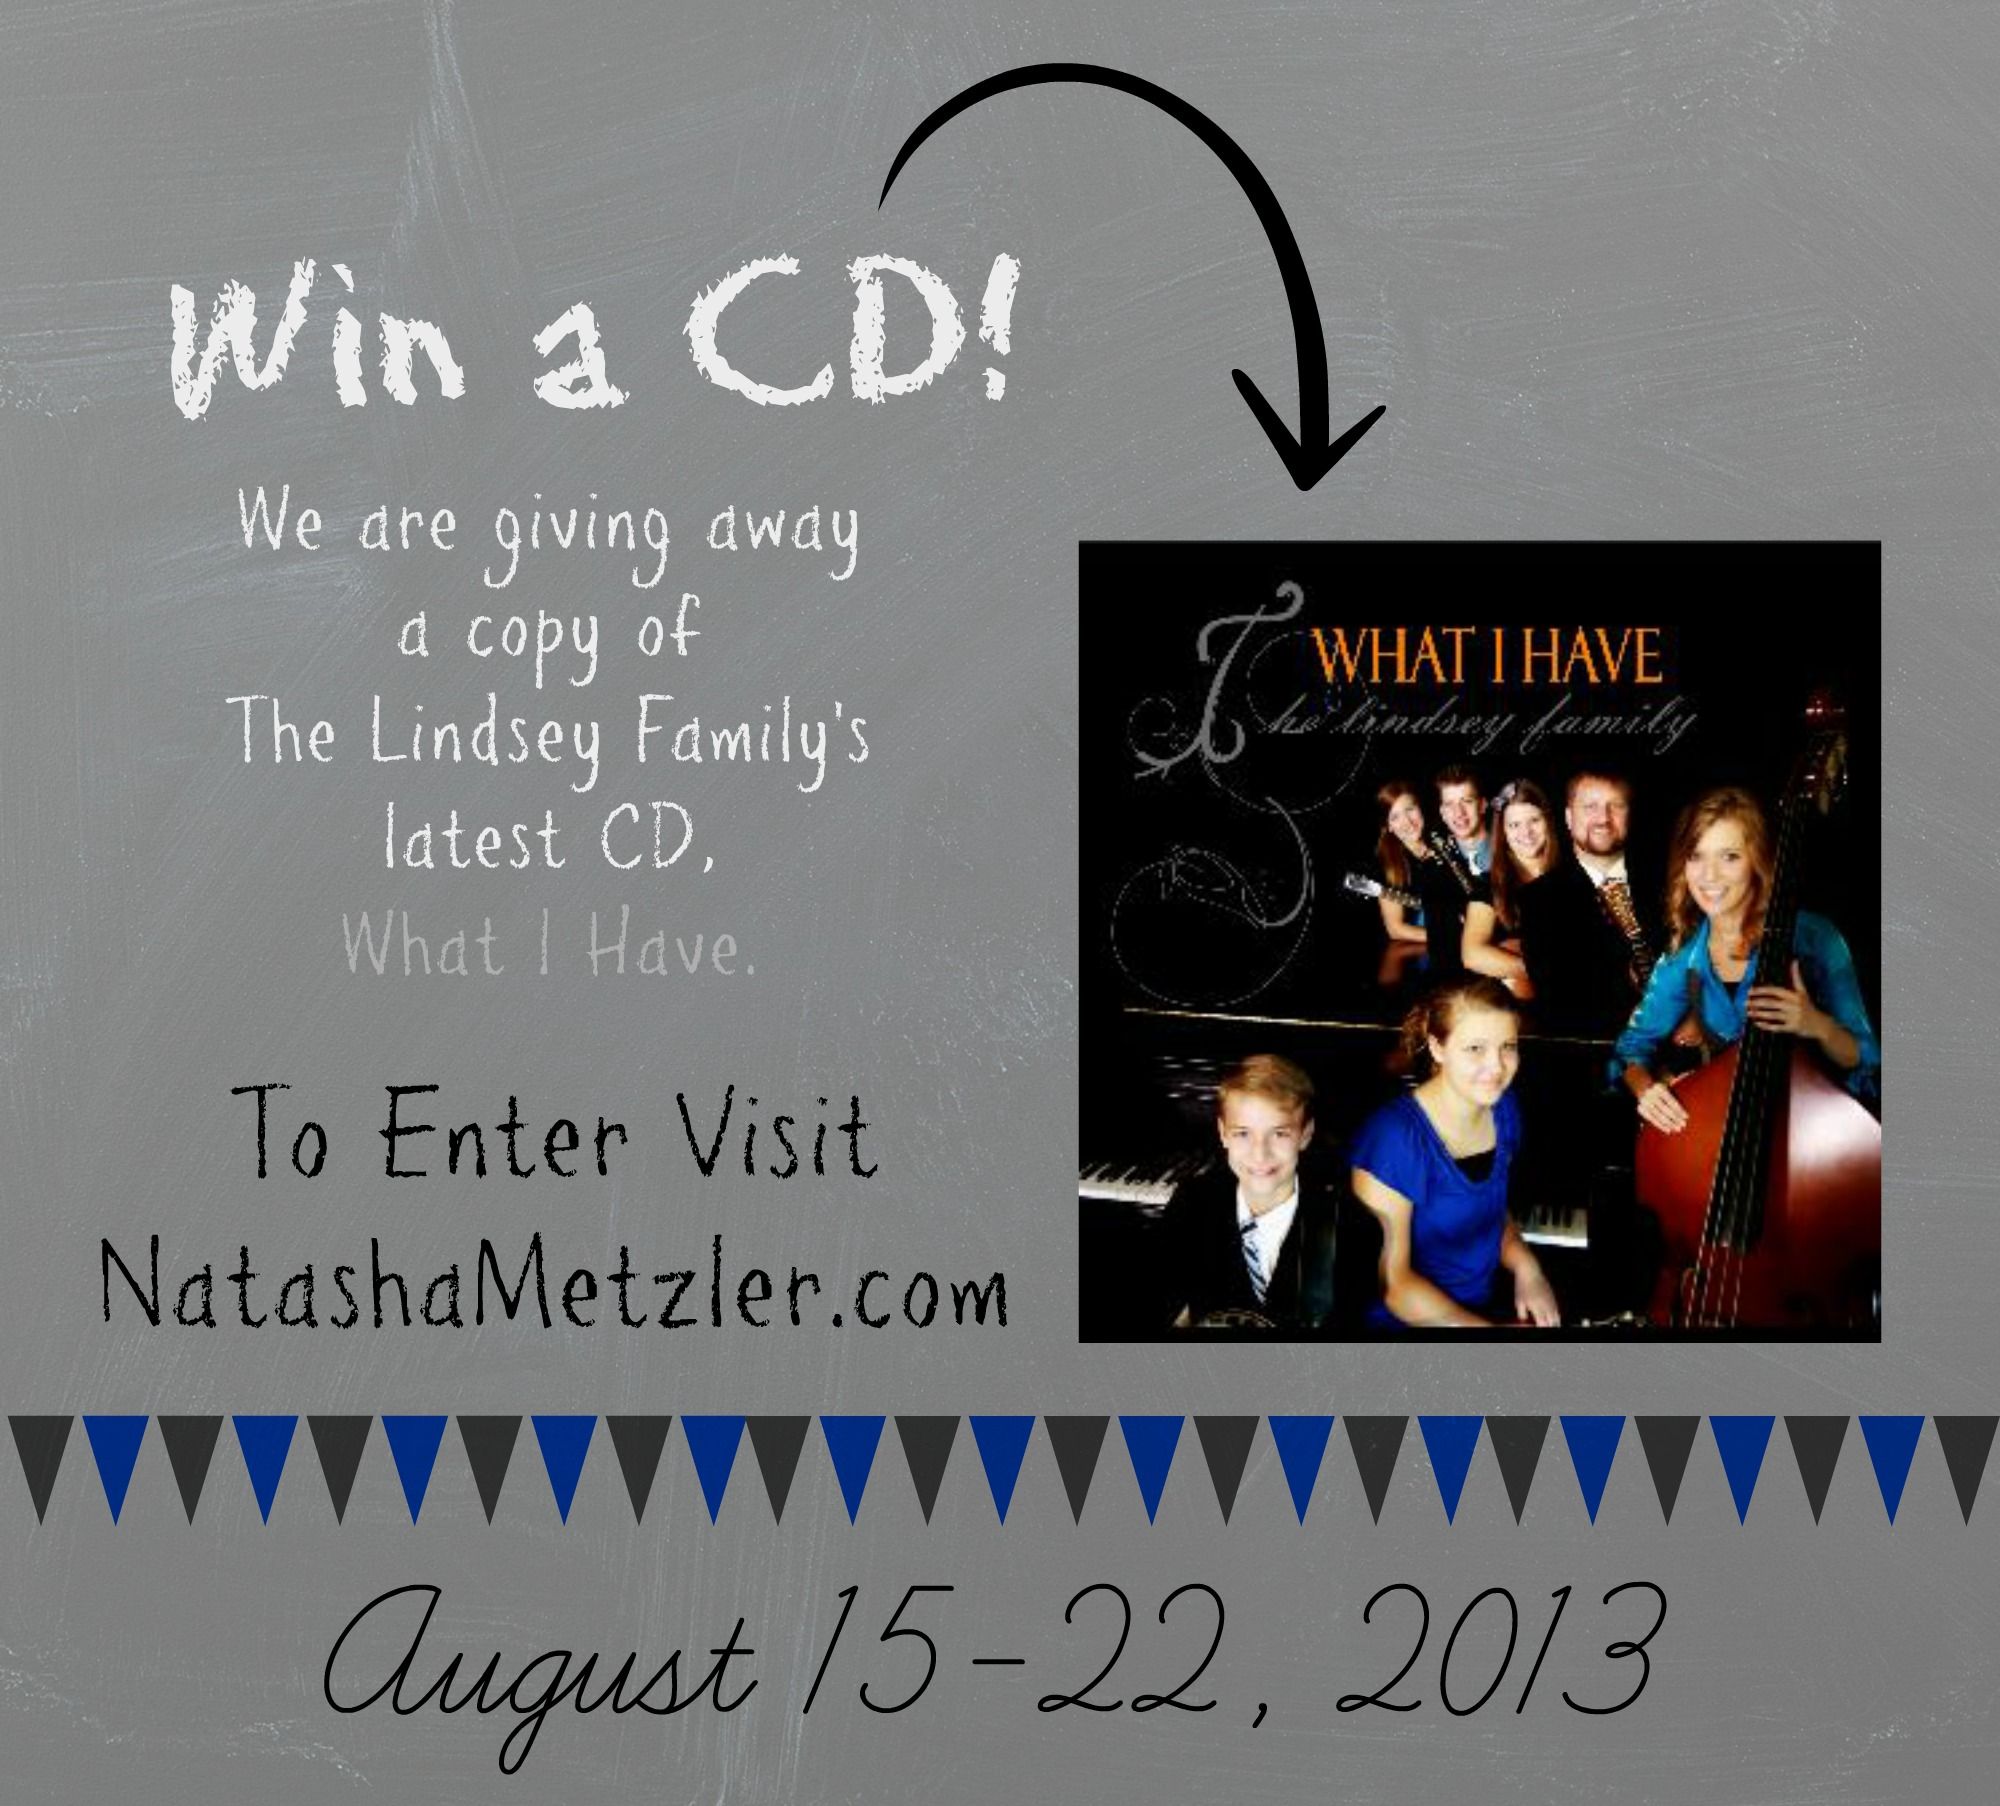 Want to win a CD? // it's a giveaway!